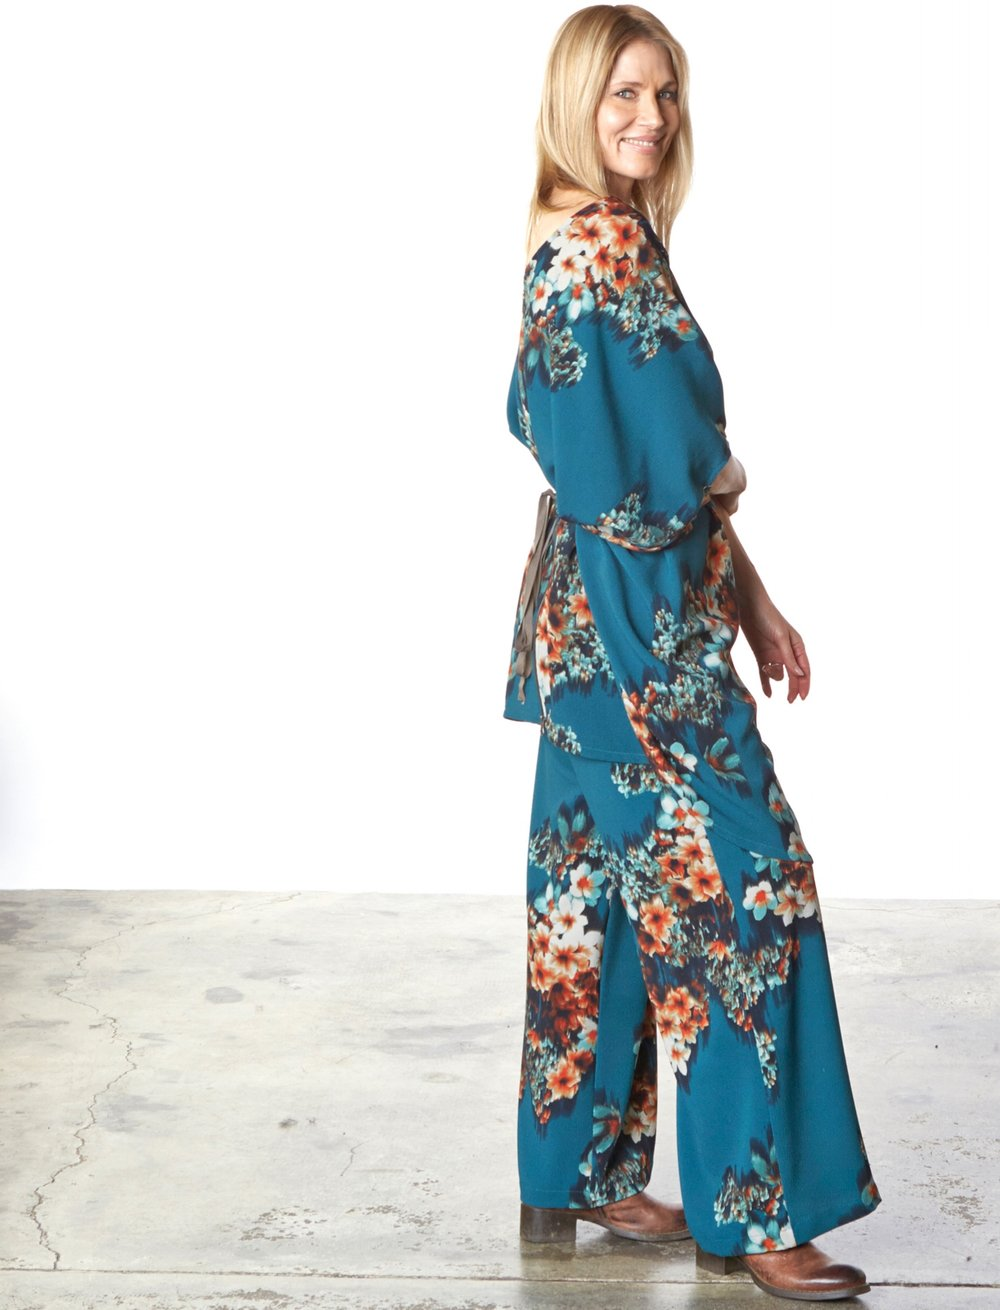 Rachel Dress, Long Full Pant in Teal Floral Print